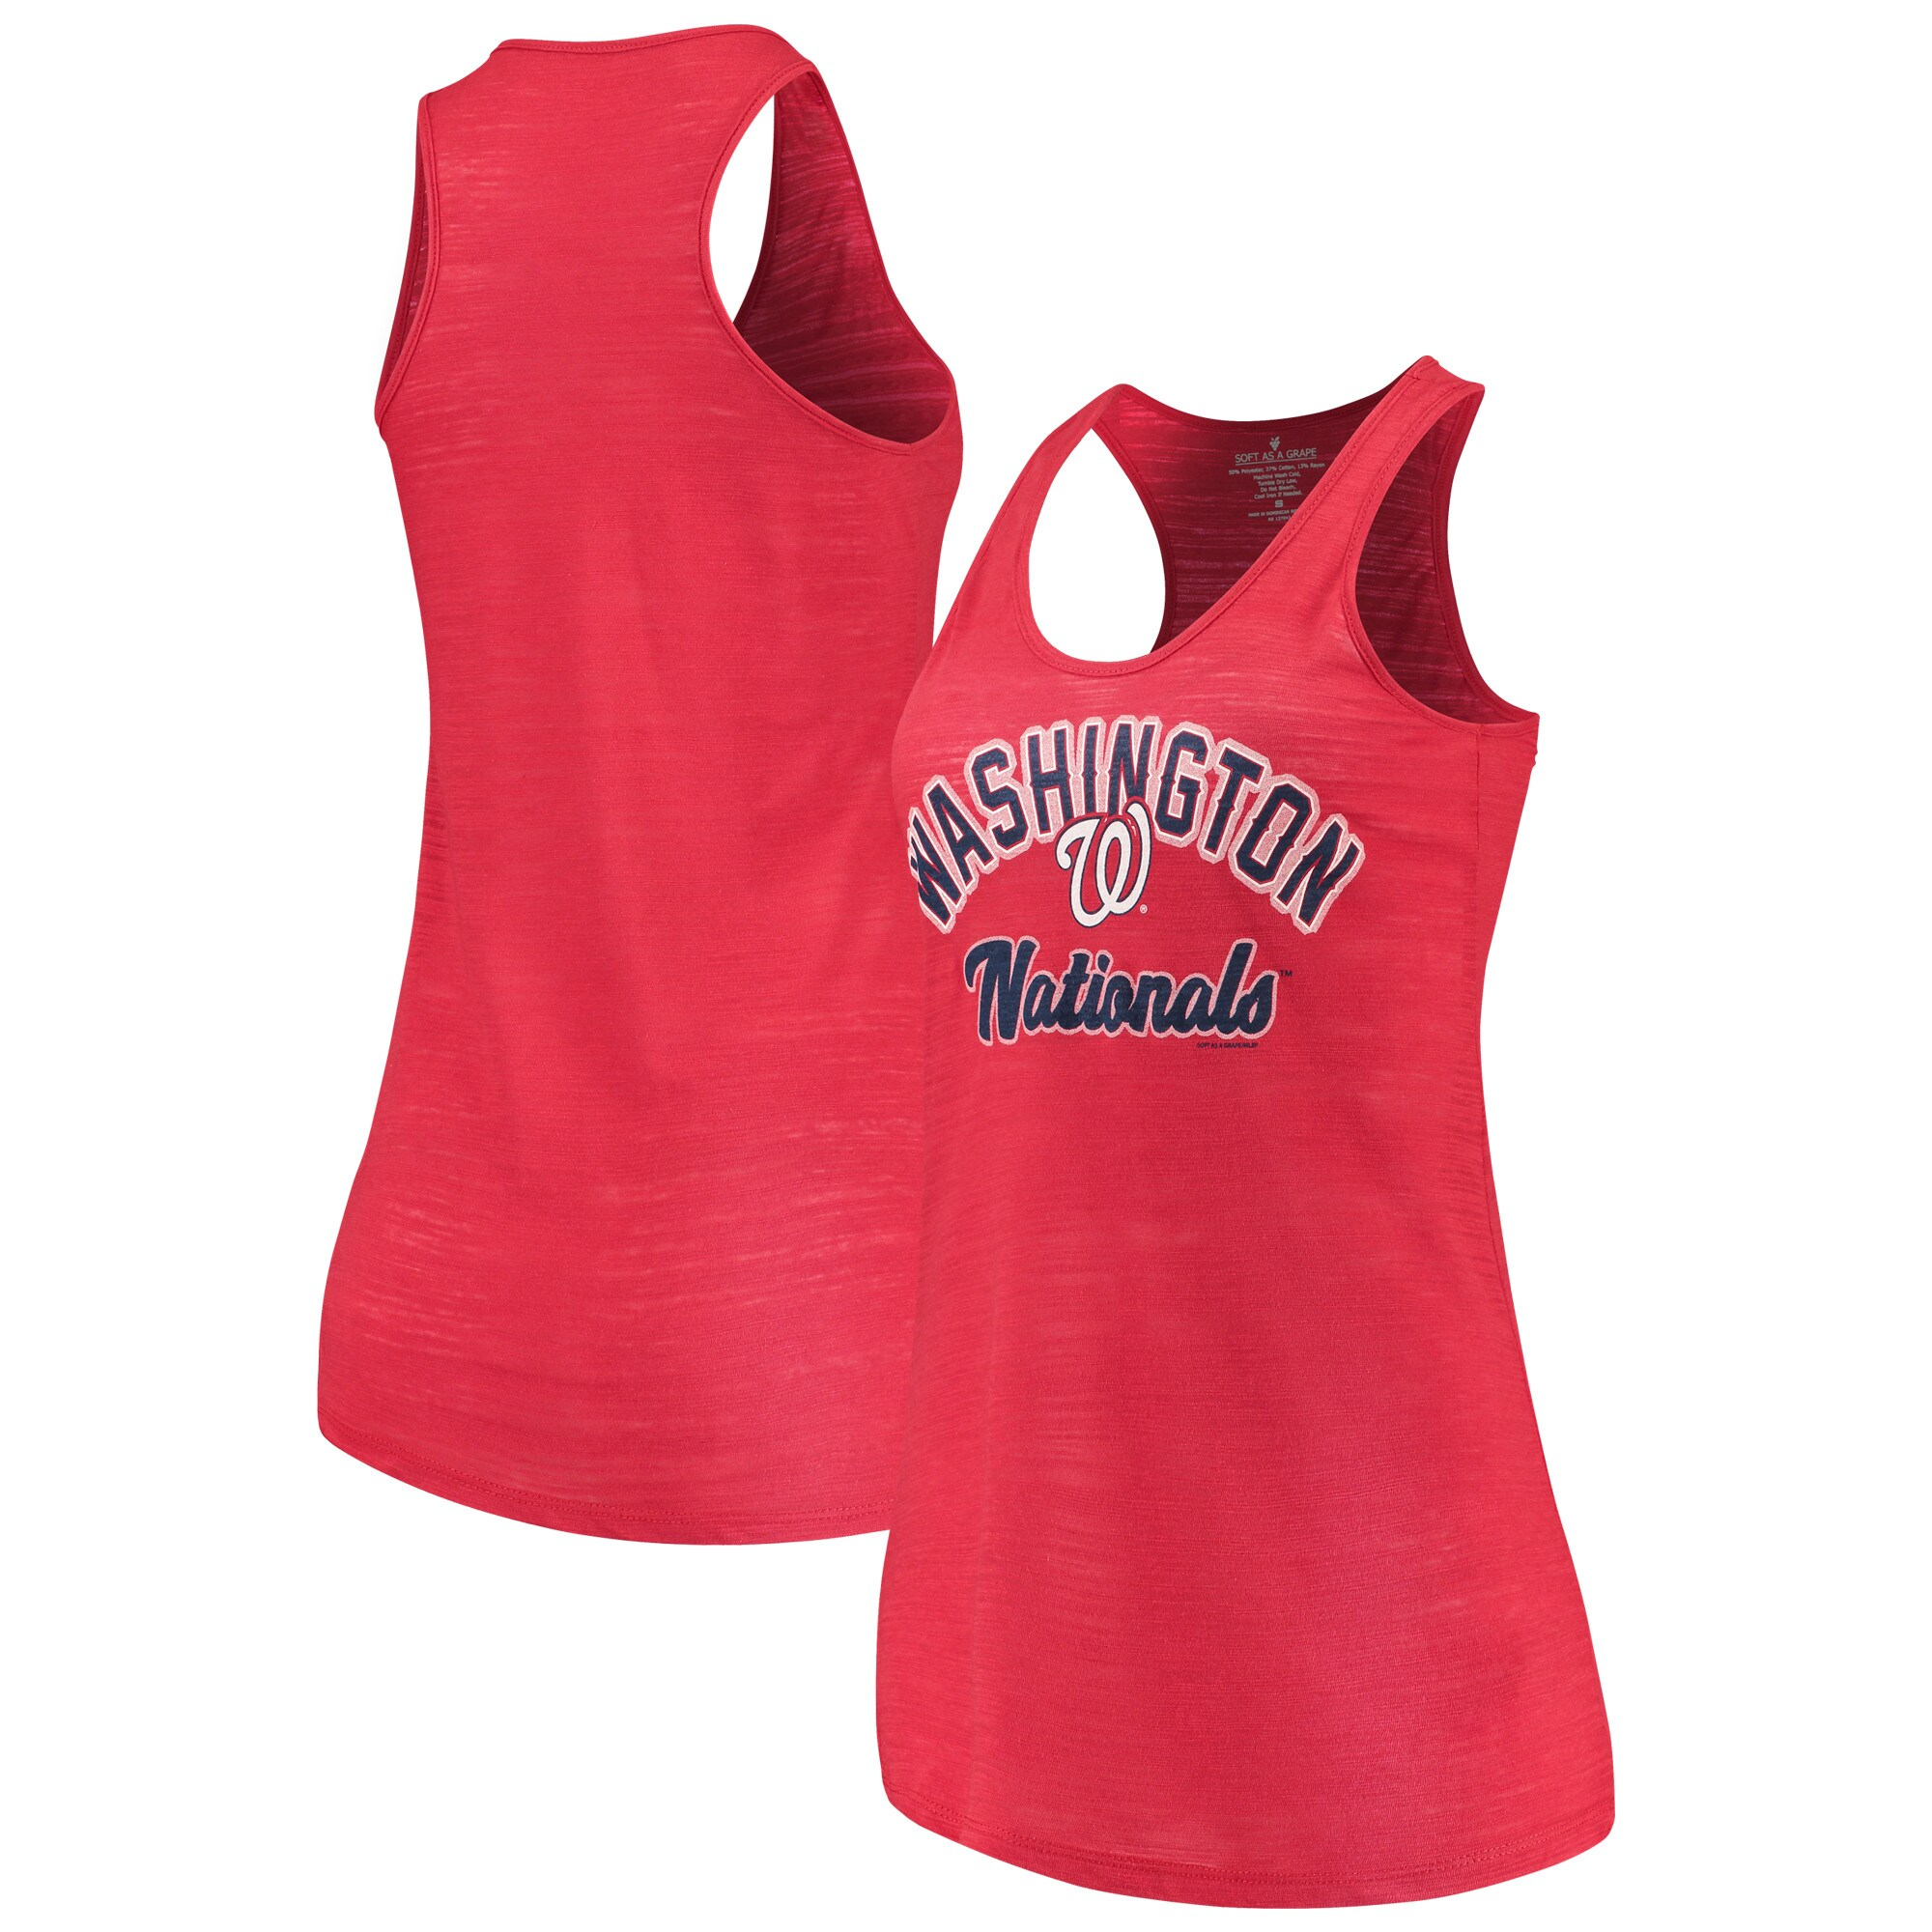 Washington Nationals Soft as a Grape Women's Multicount Racerback Tank Top - Red